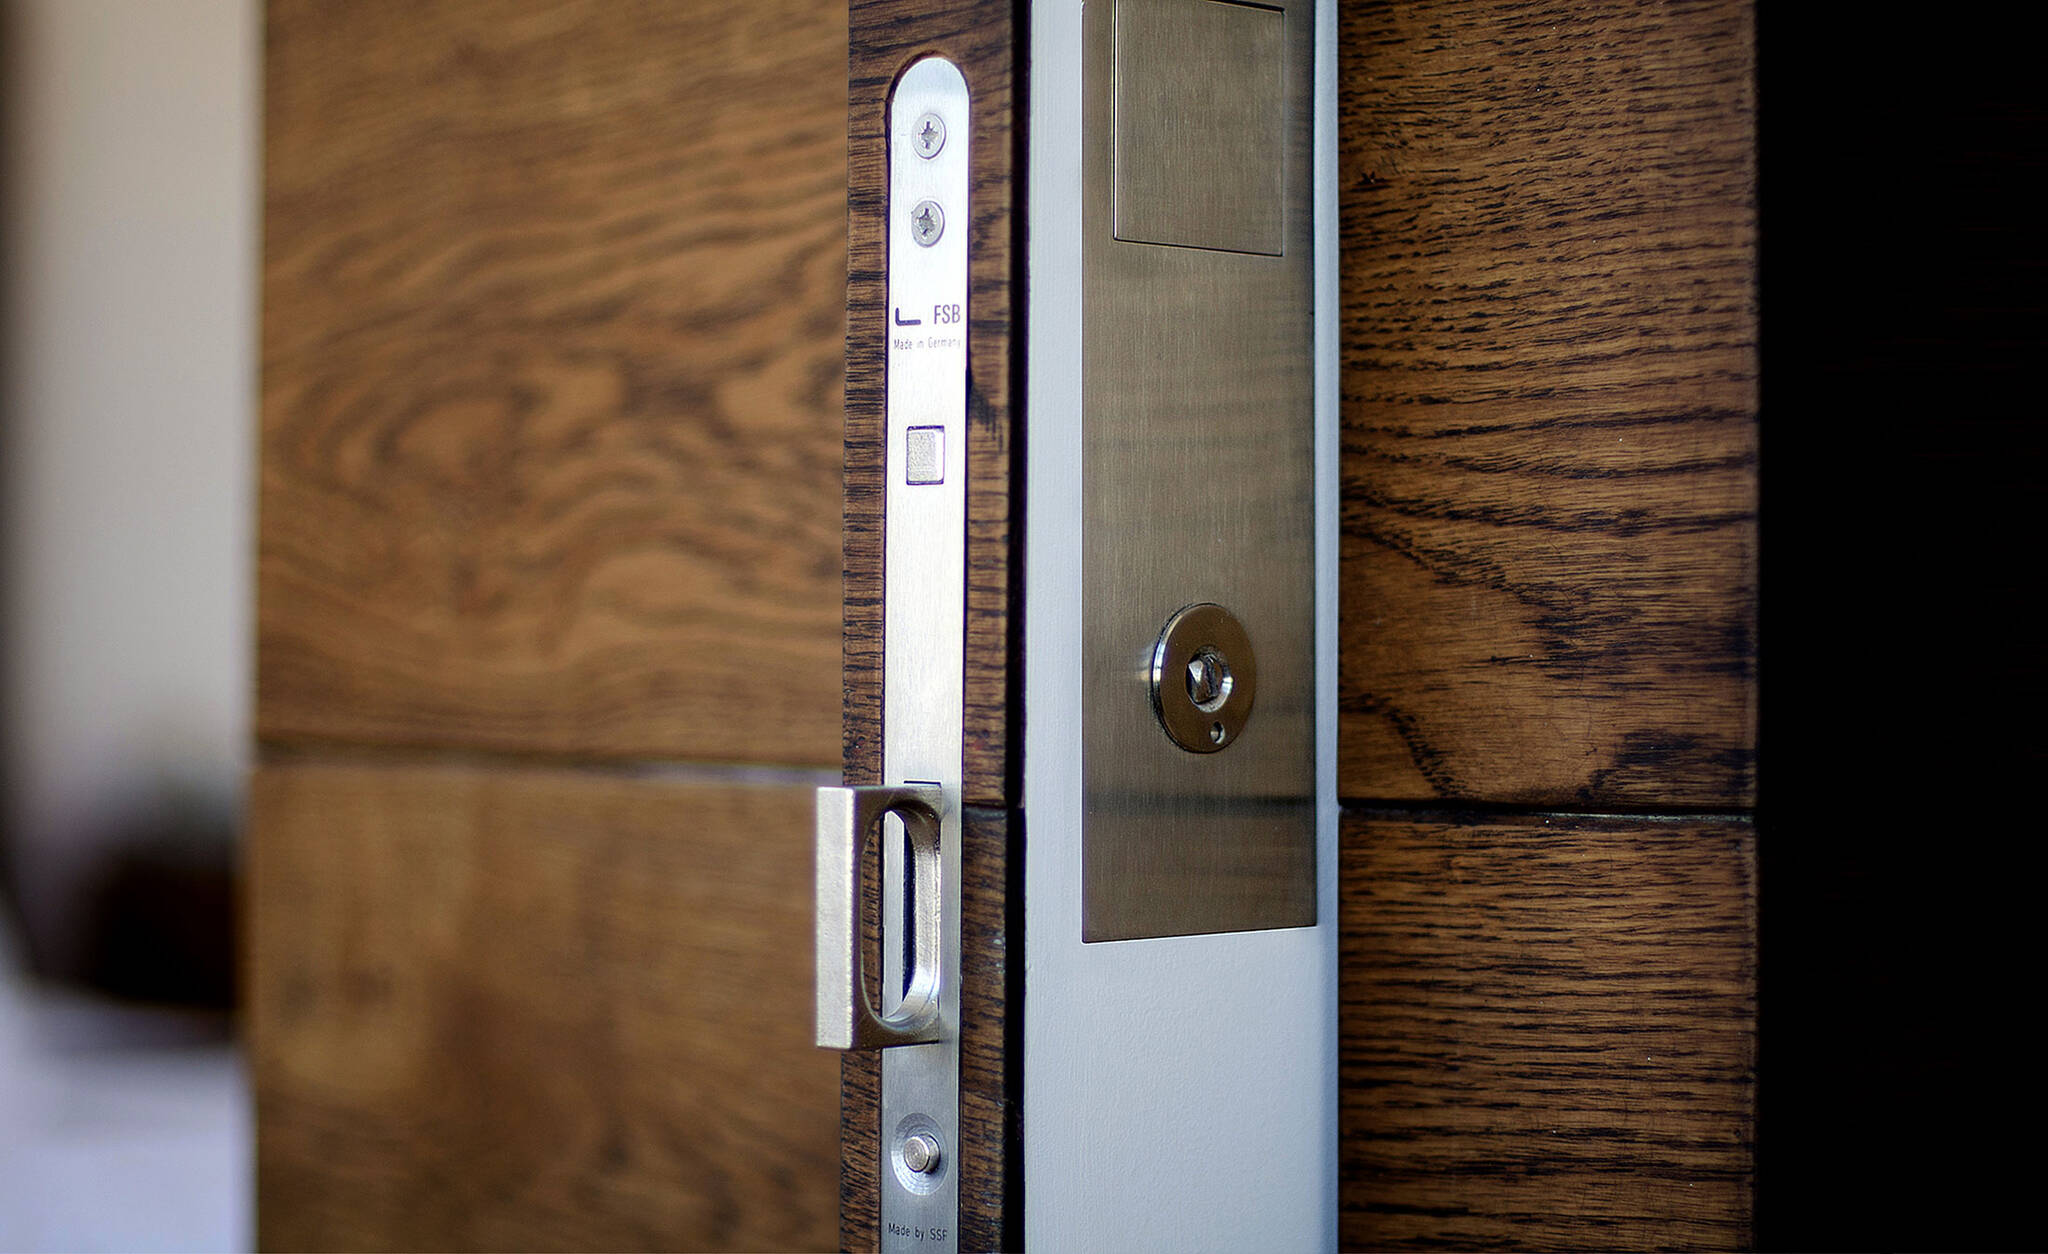 Detail of the privacy lock of the pocket door that divide the living room and the bedroom of the residence renovation project in the Chelsea Mews building on the Flatiron District in Manhattan, New York City designed by the architecture studio Danny Forster & Architecture